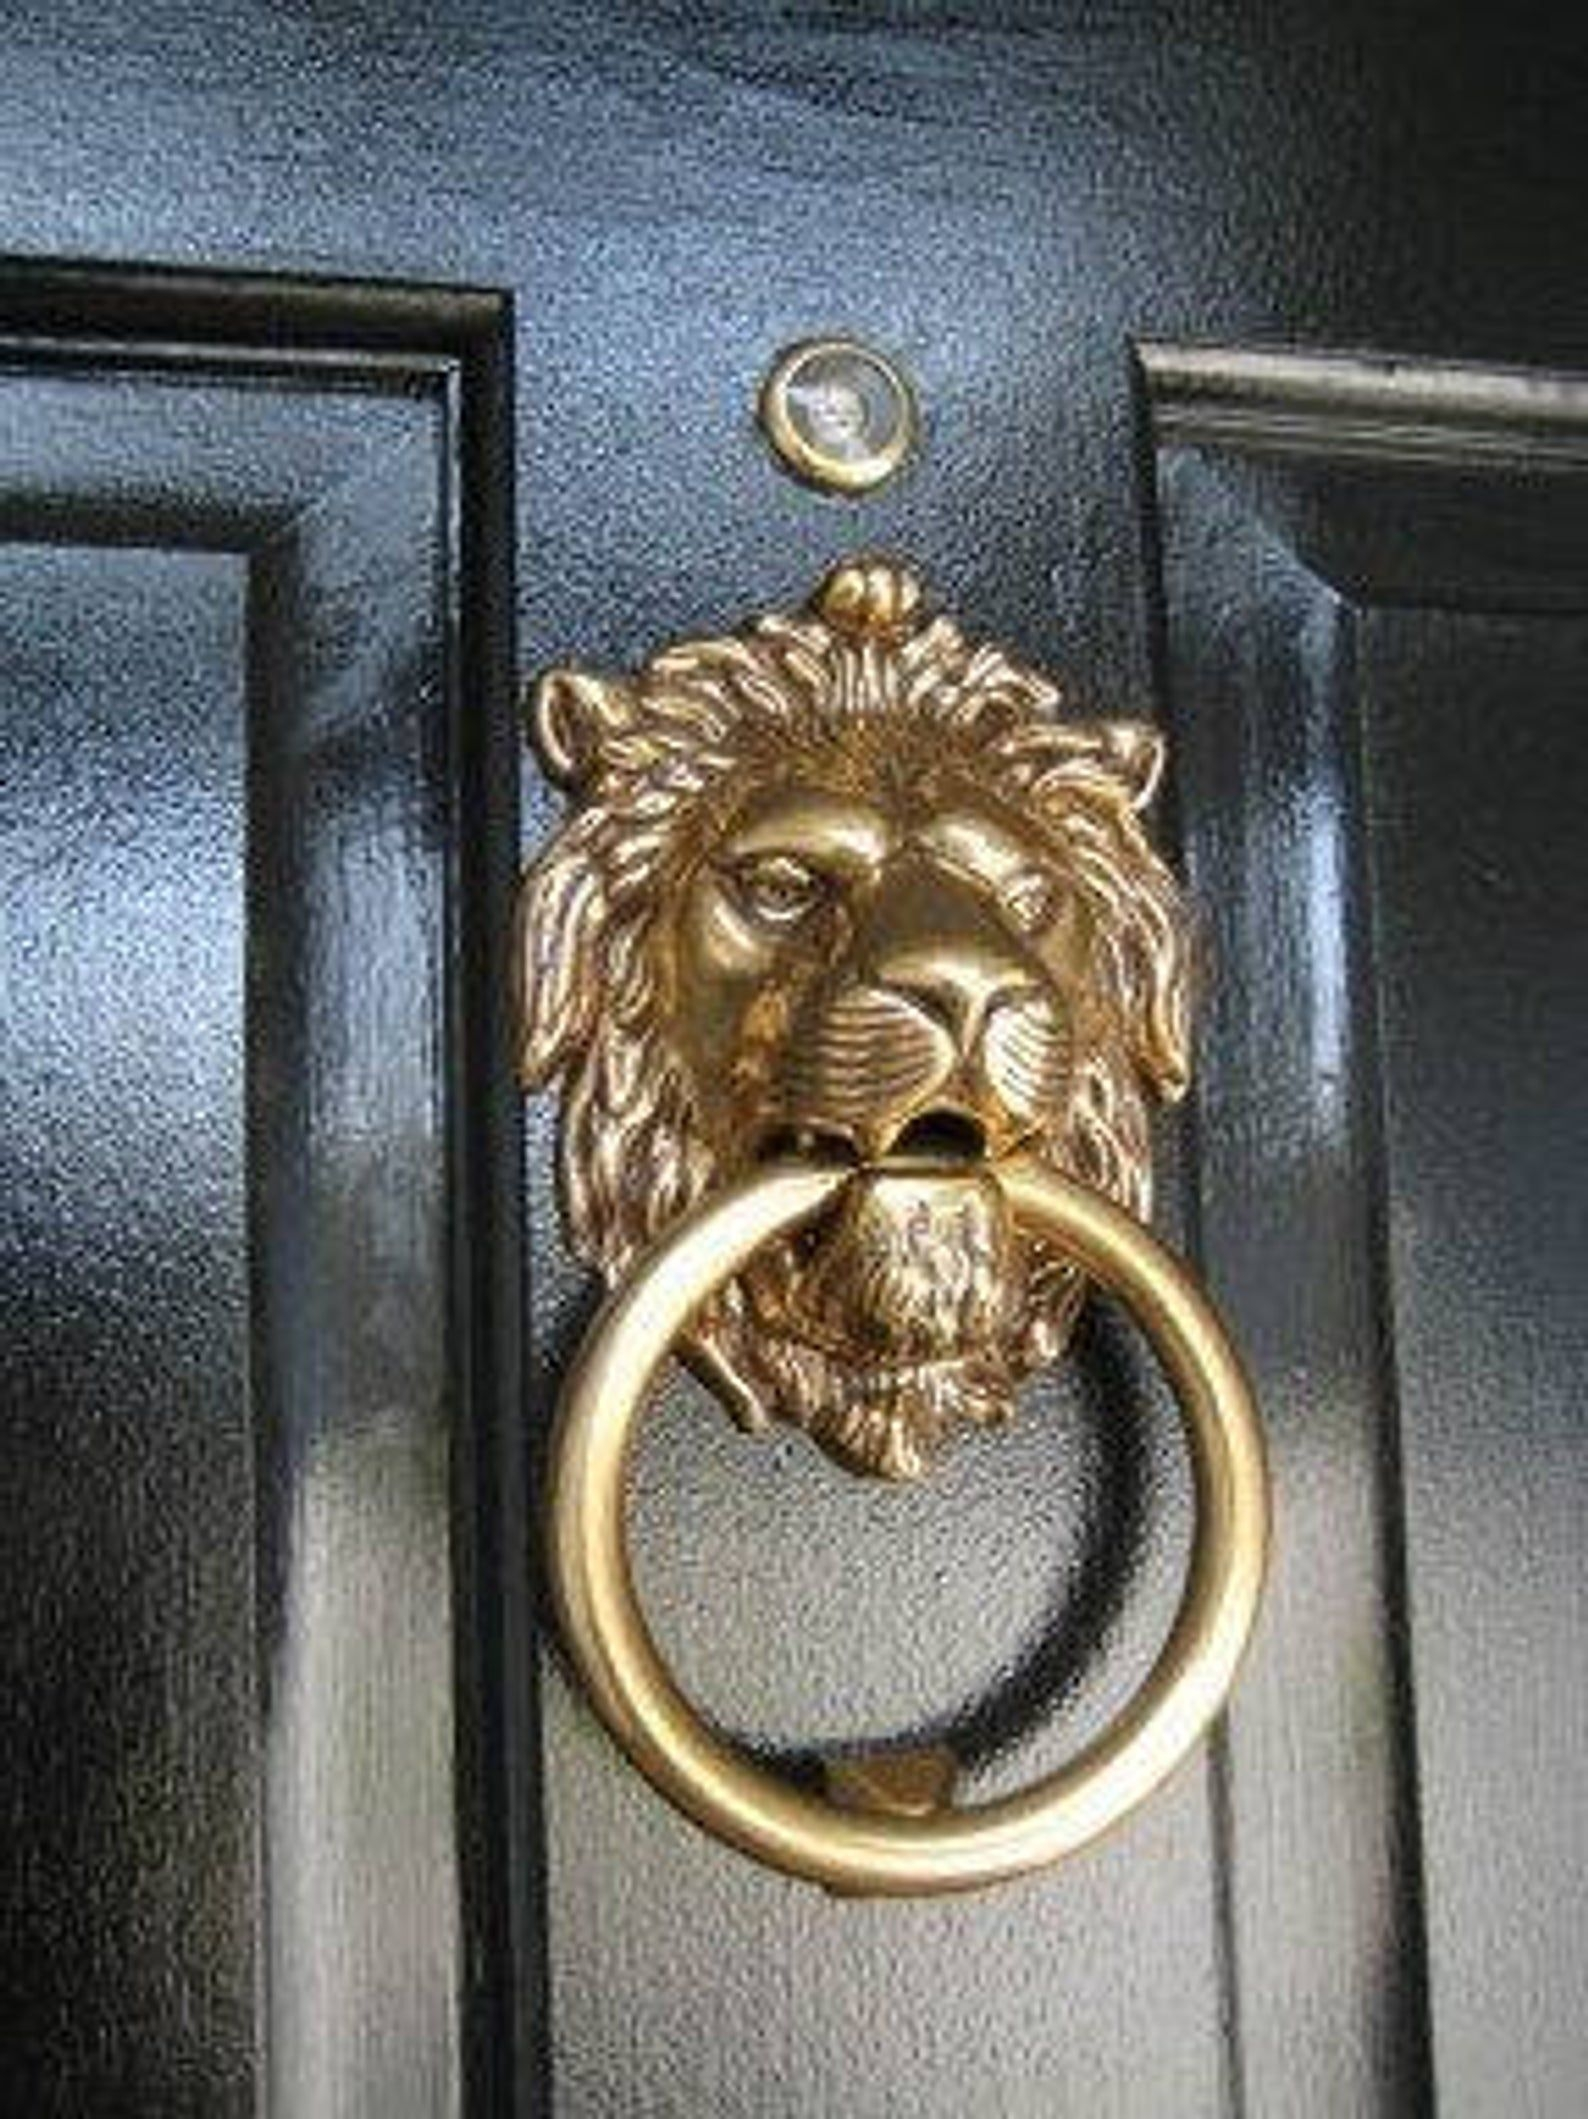 Brass lion head door knocker & Brass Lion Head Door Knocker - Foter